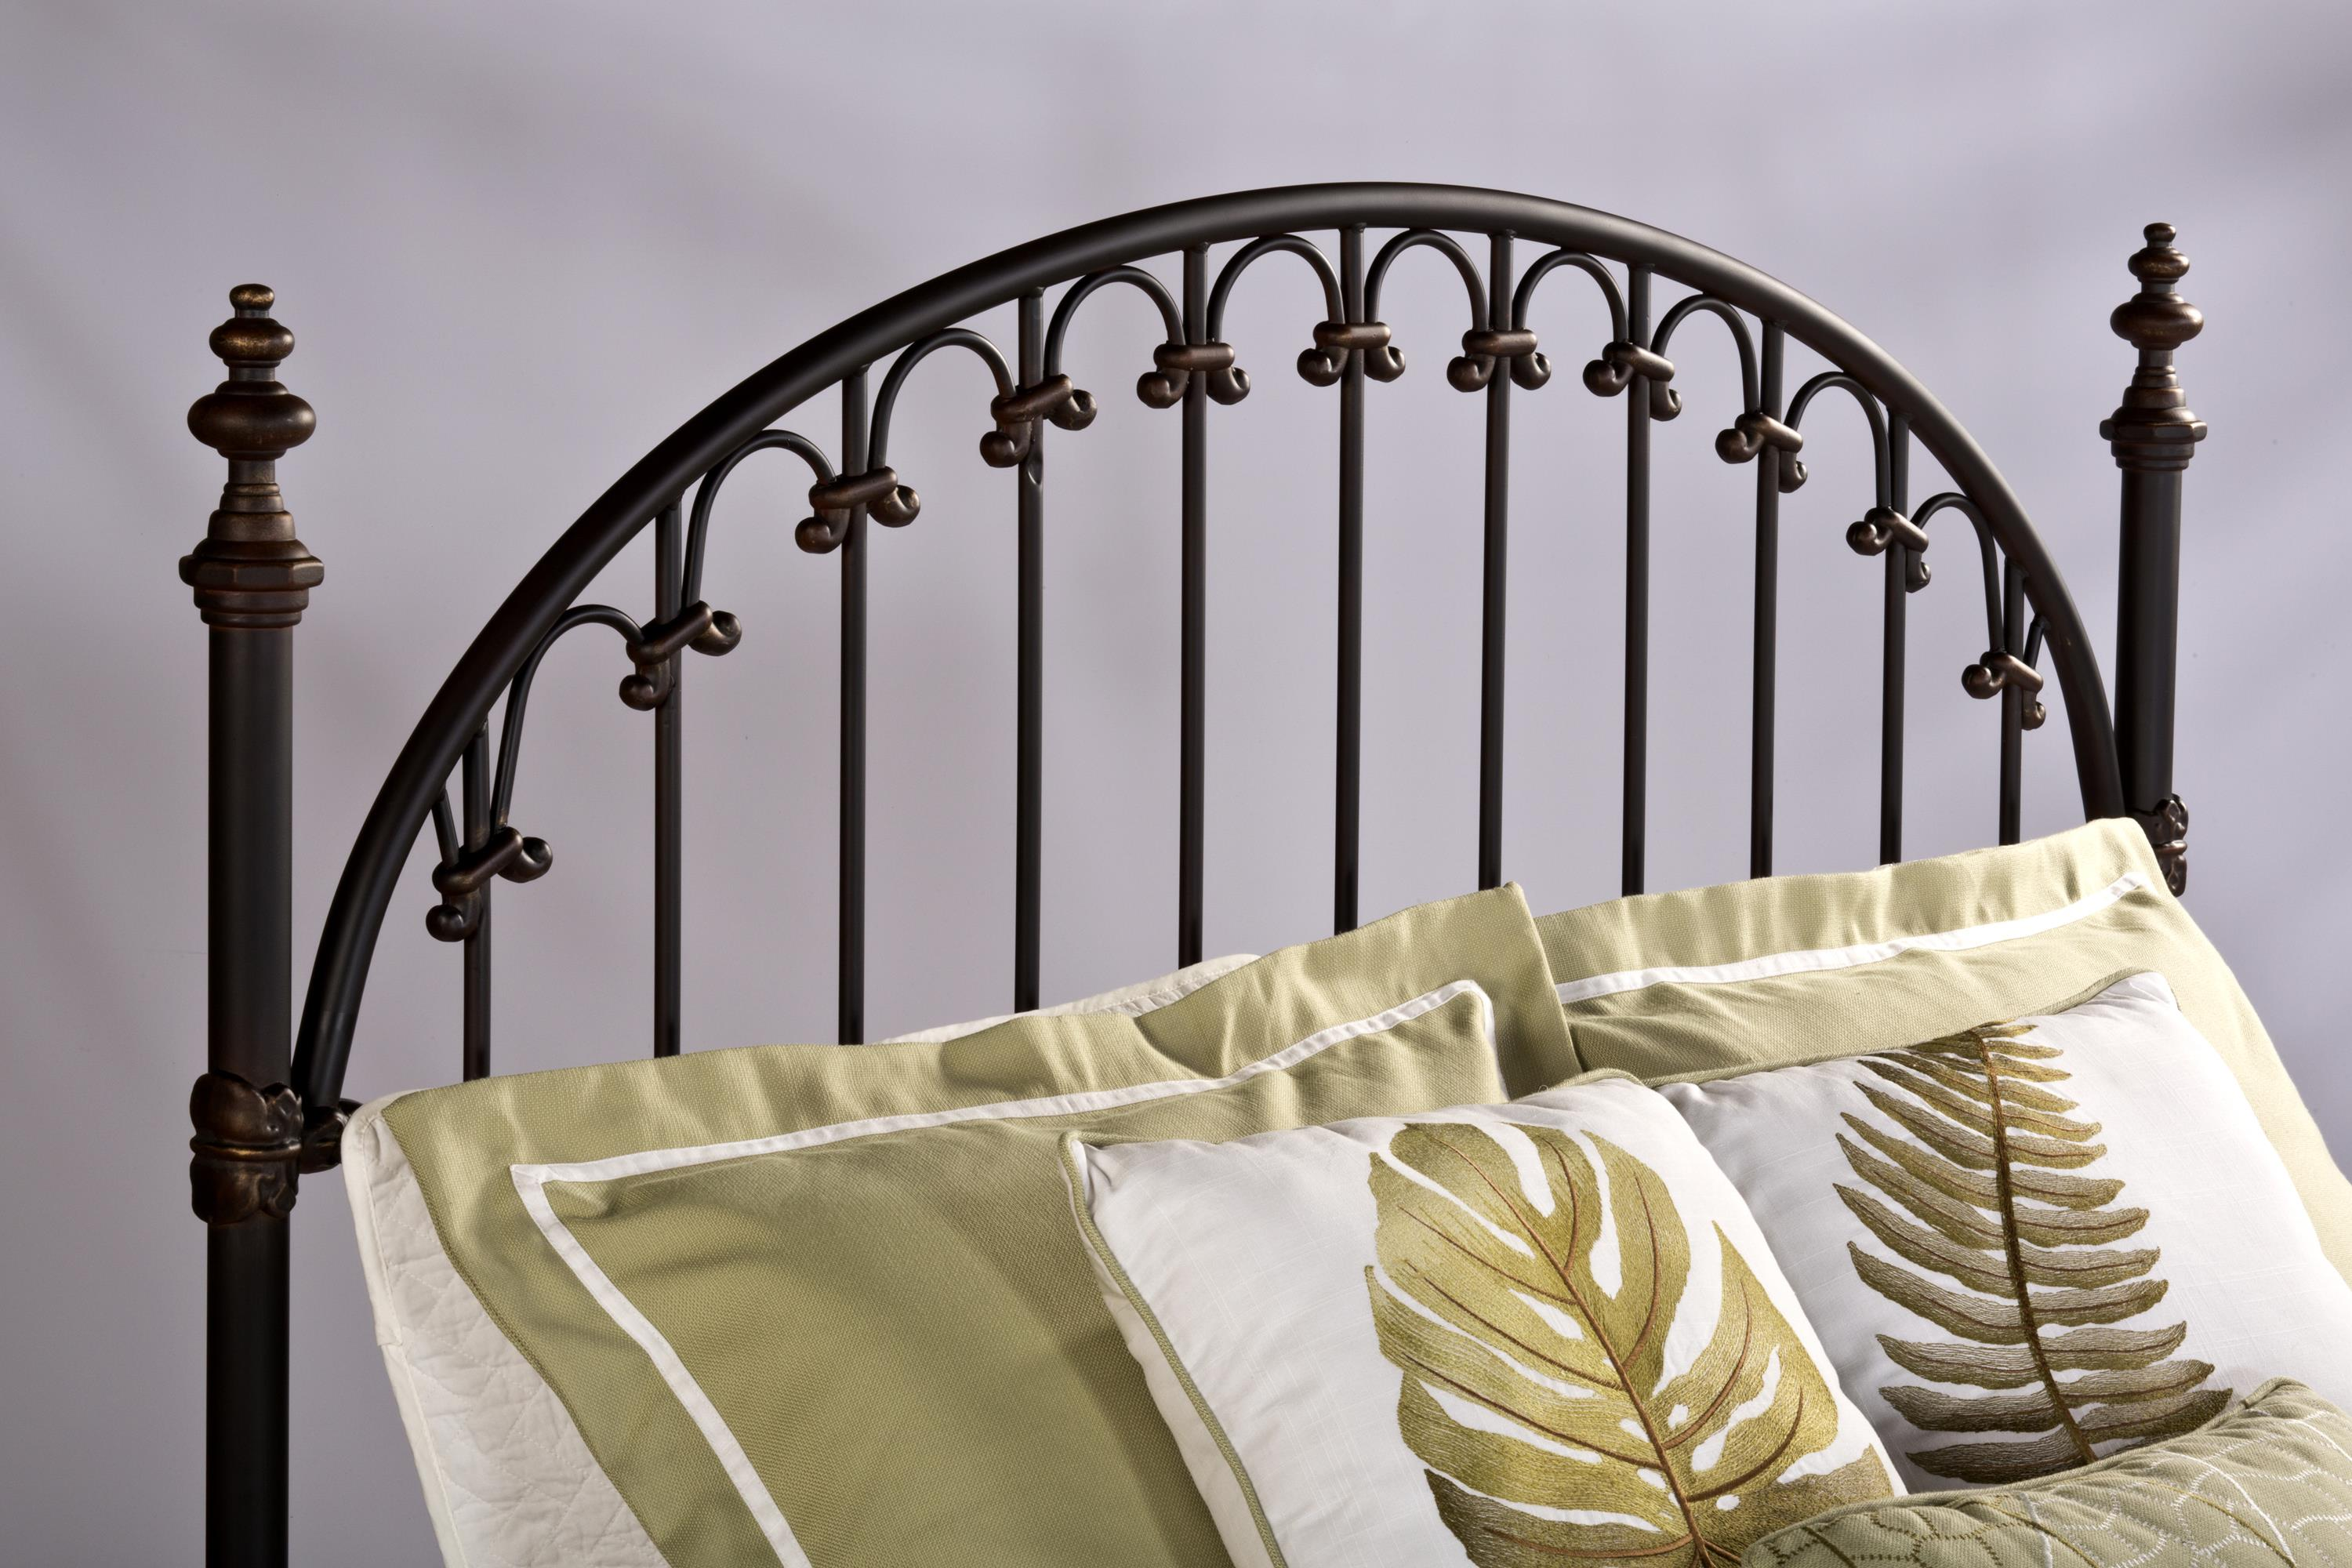 Hillsdale Metal Beds Full/Queen Headboard with Rails - Item Number: 1038HFQR